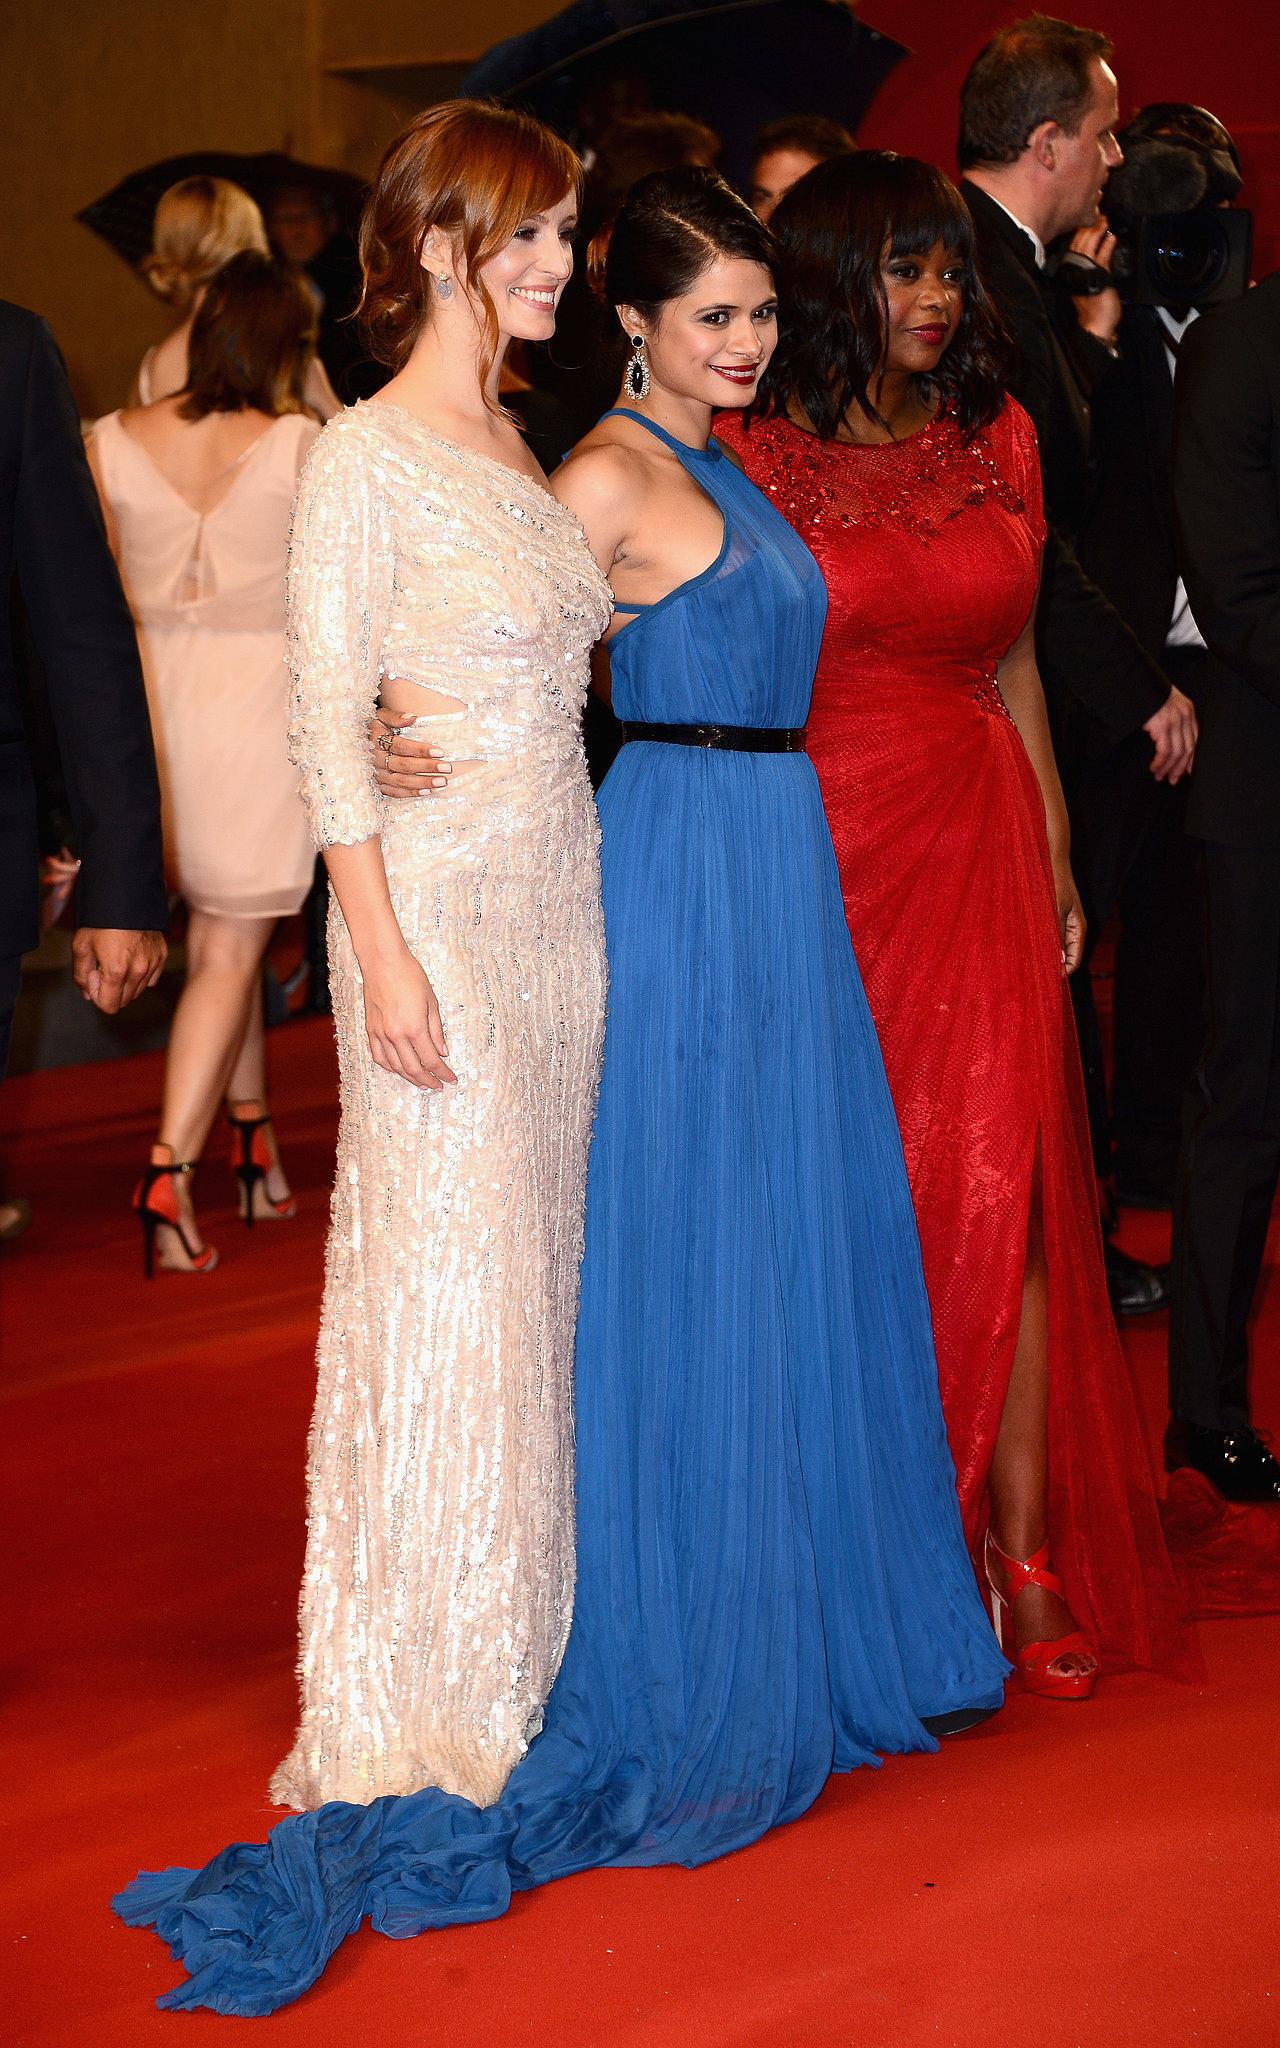 Ahna O'Reilly, Octavia Spencer, and Melonie Diaz were in the spotlight at the premiere of Fruitvale Station.